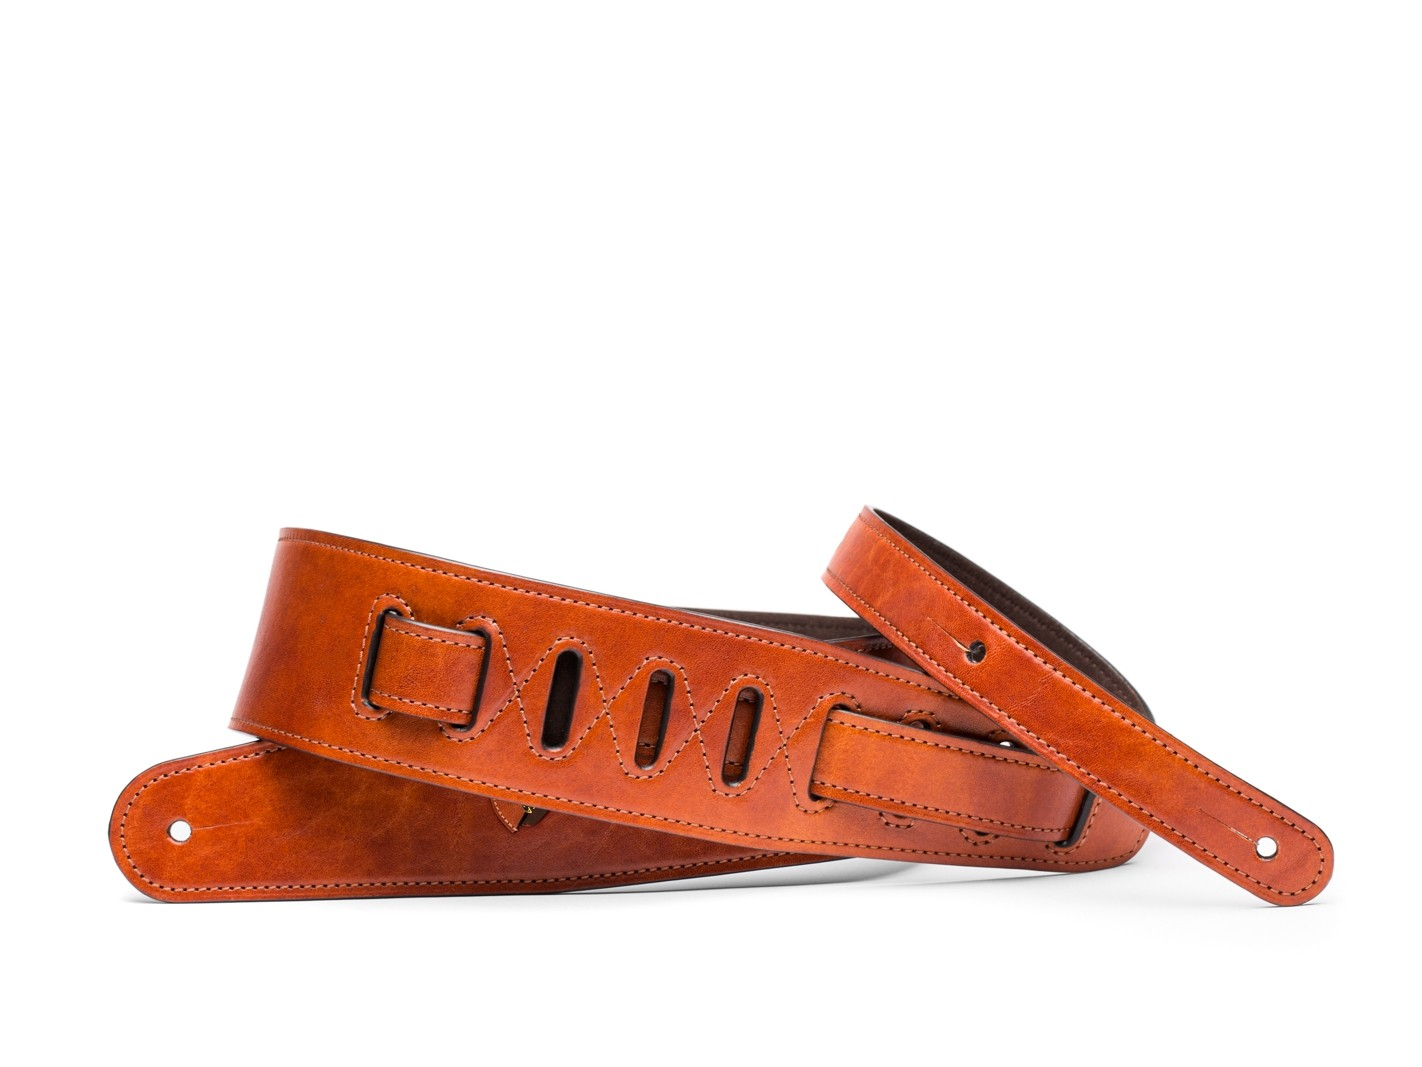 Guitar Strap with Pick Pocket